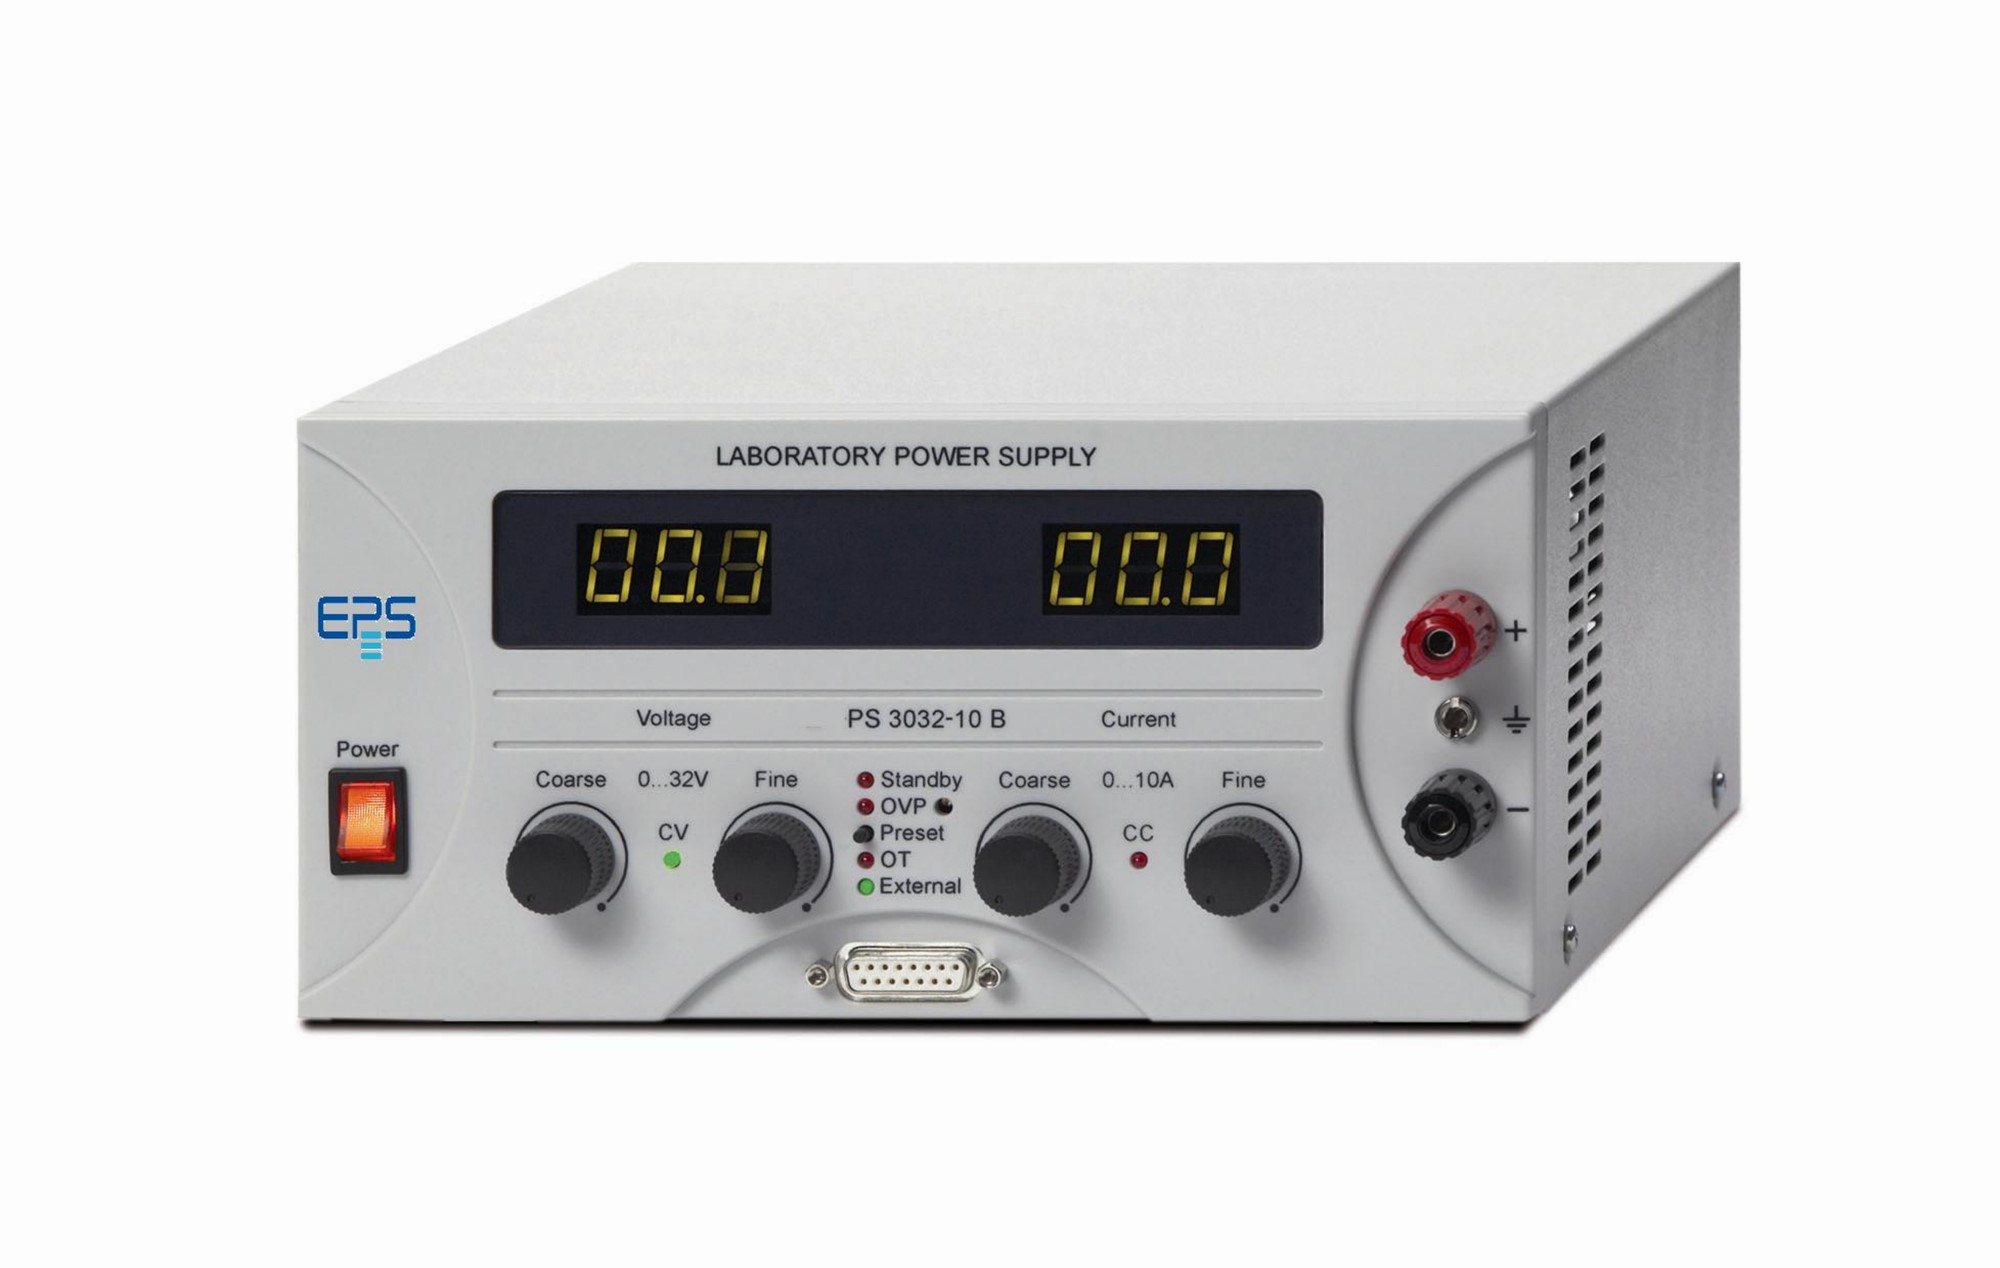 E/PS 3000B Laboratory Power Supply 160-650 W